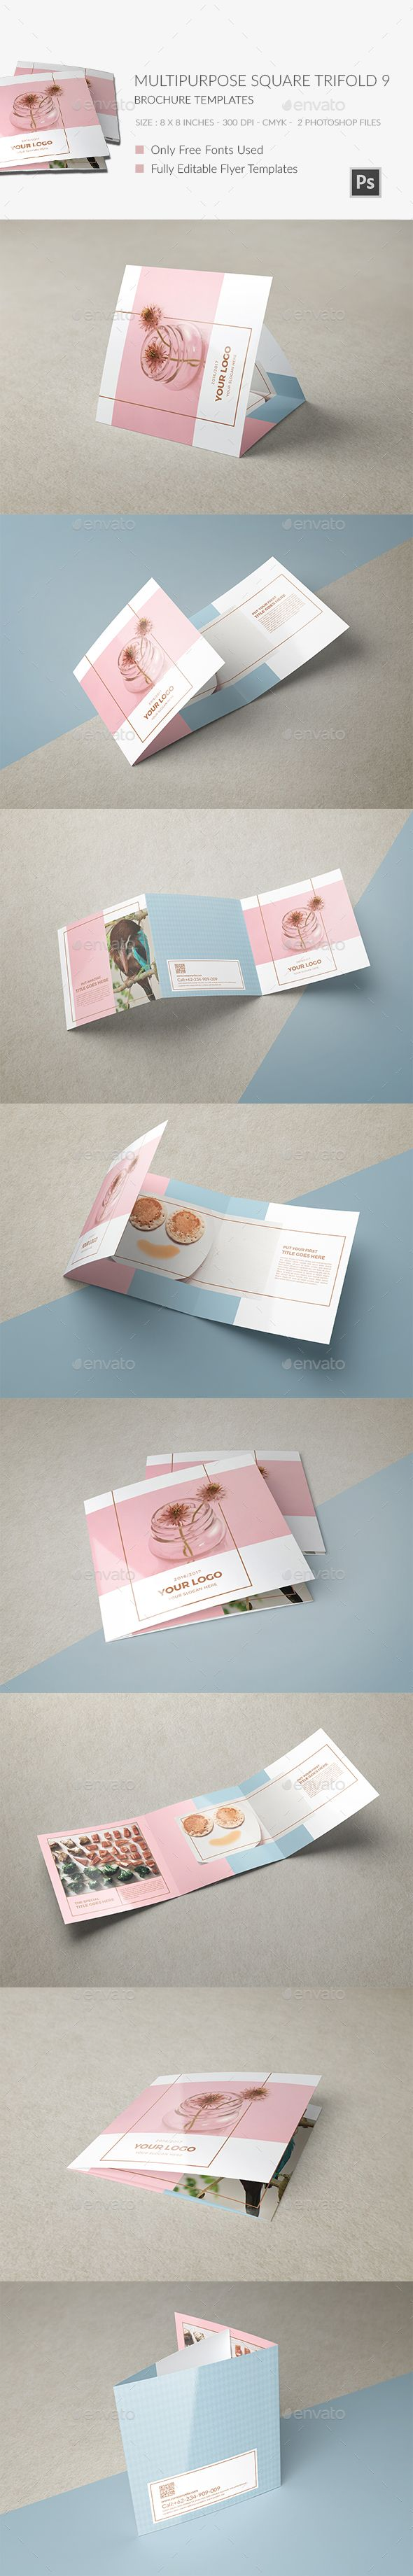 Multipurpose Square Trifold Brochure